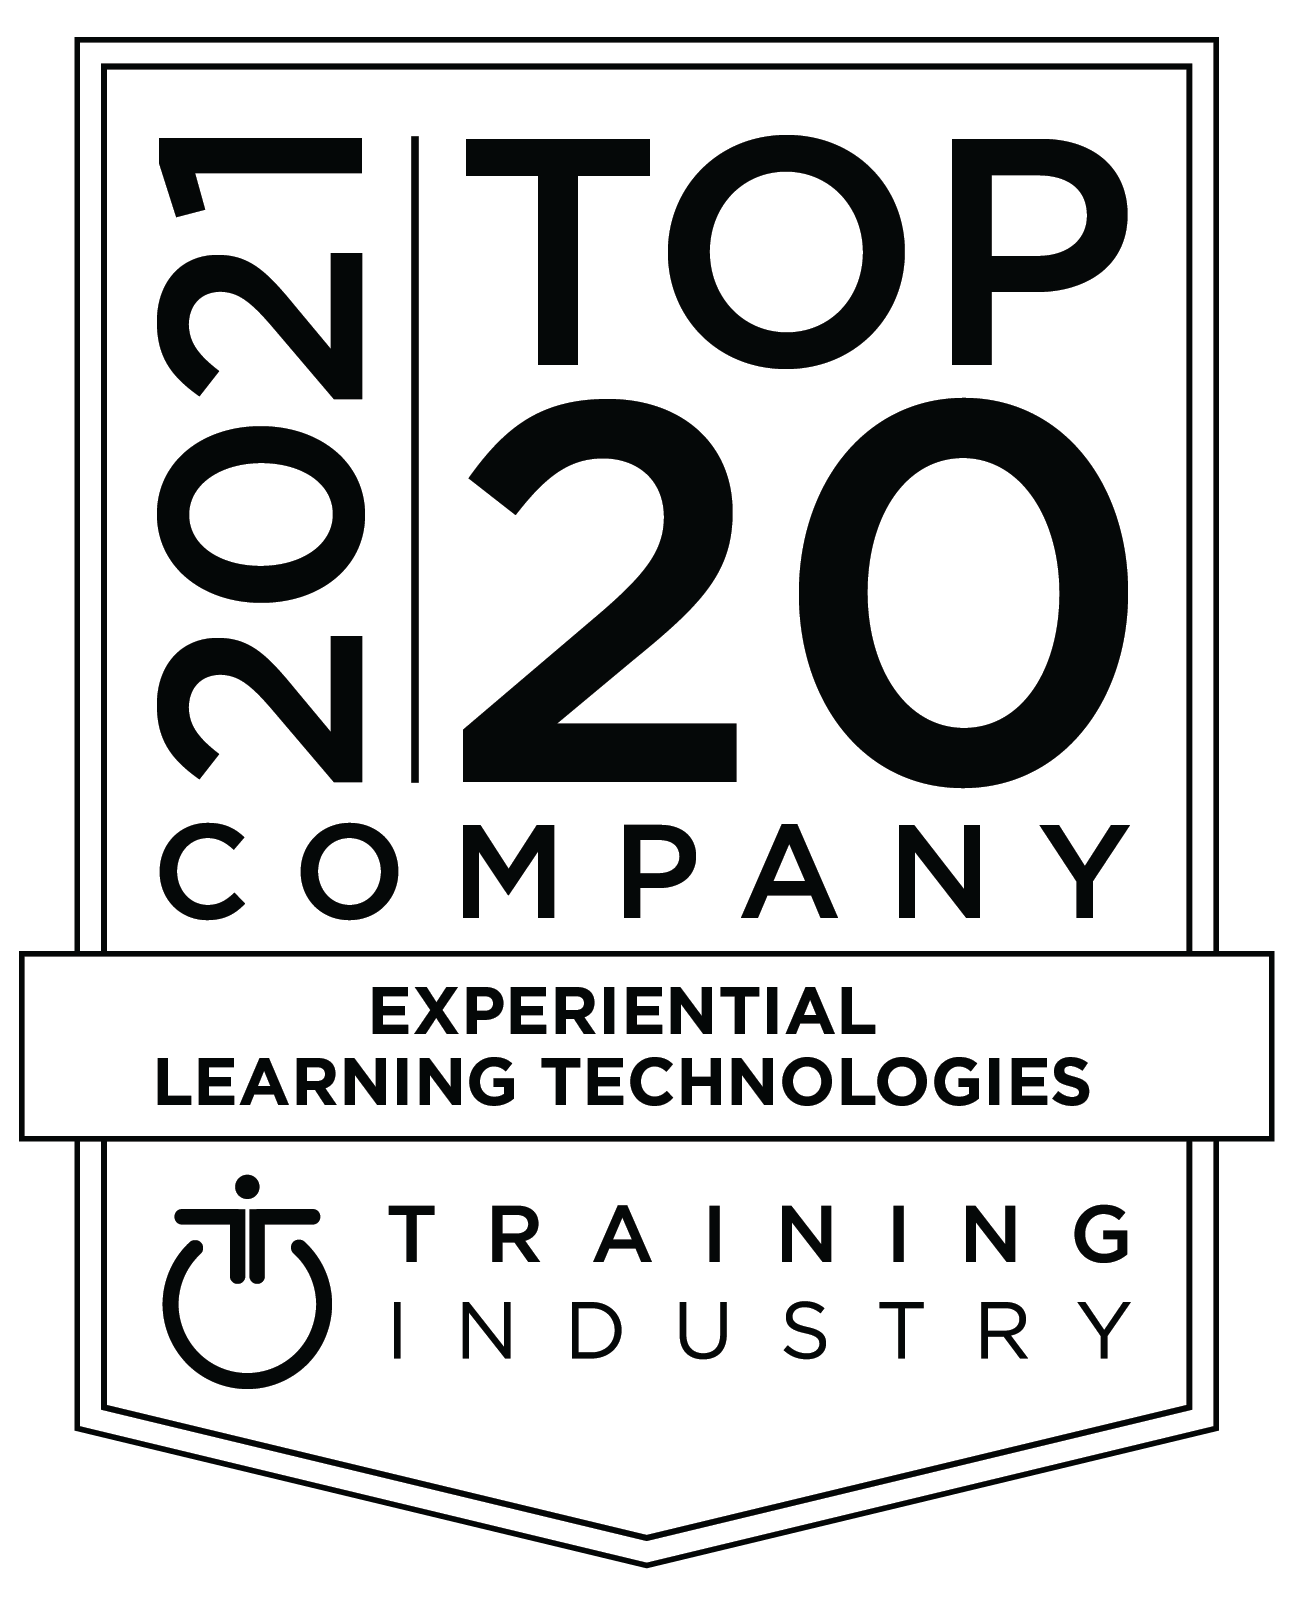 2021 Top20 Print BW Large_experiential learning technologies